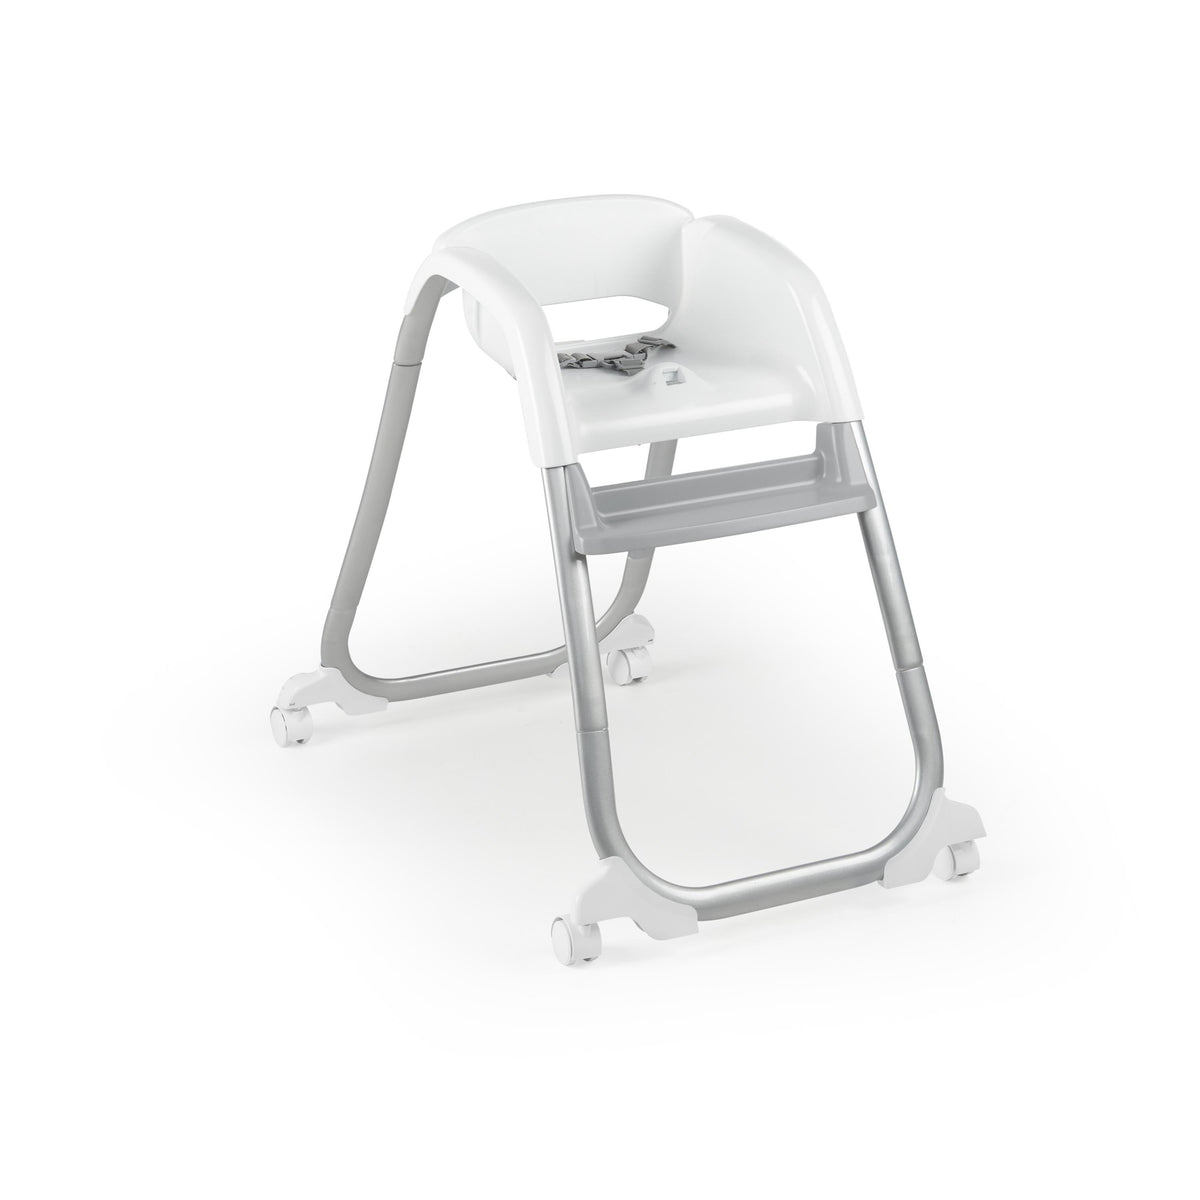 Ingenuity BS11310 High Chair Trio Elite 3-in-1 High Chair - Braden P